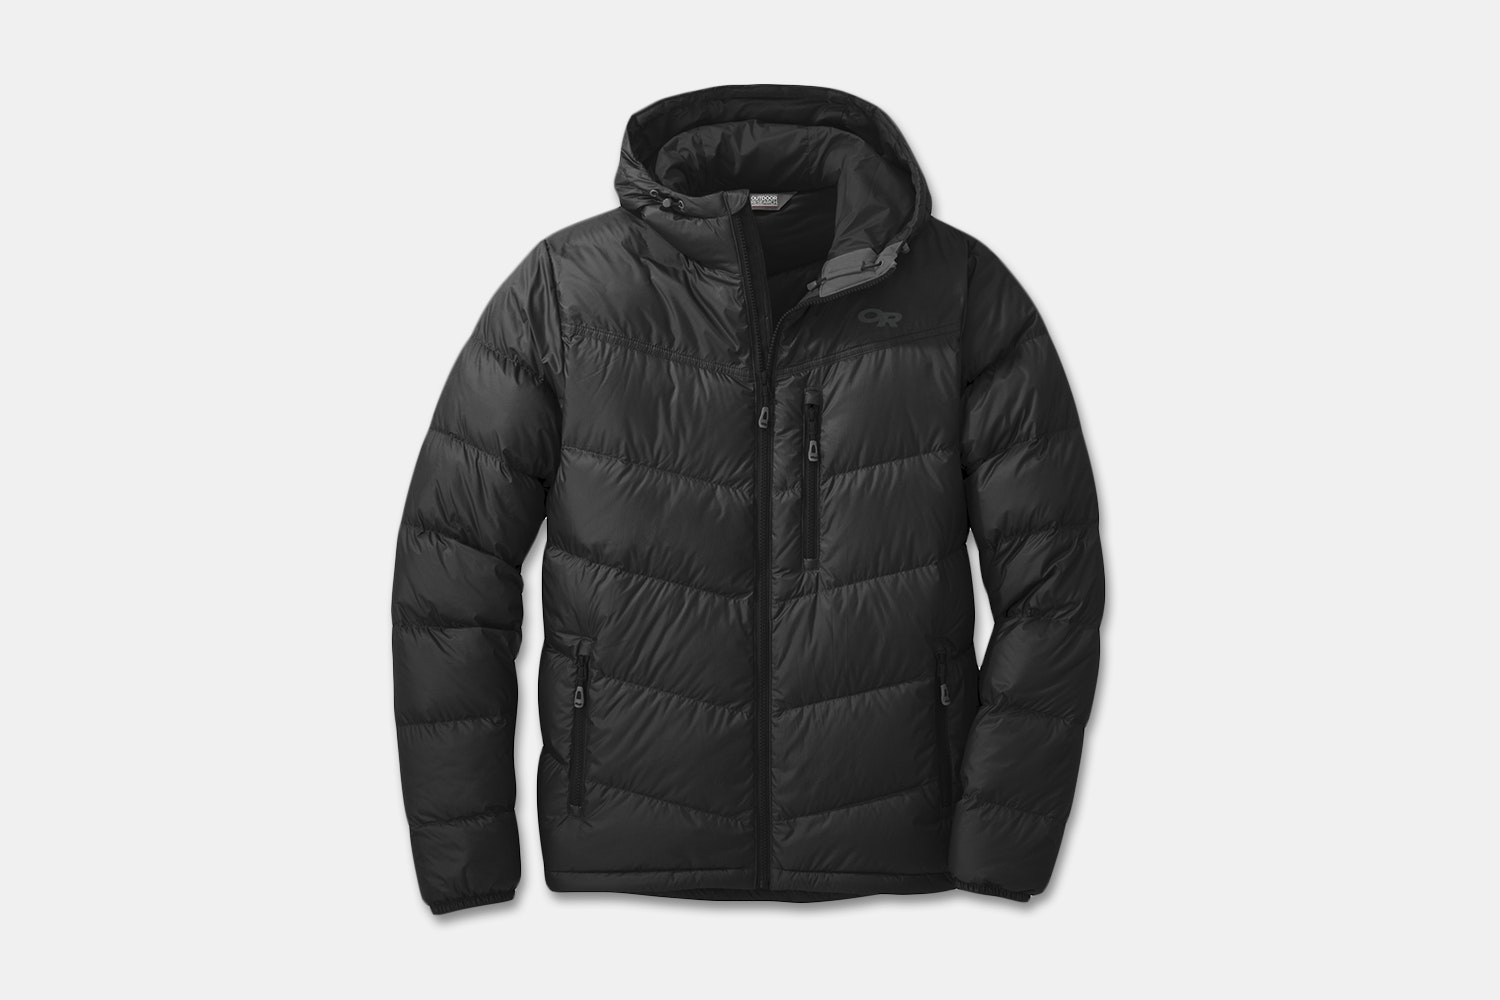 Men's – Hoody – Black (+$20)